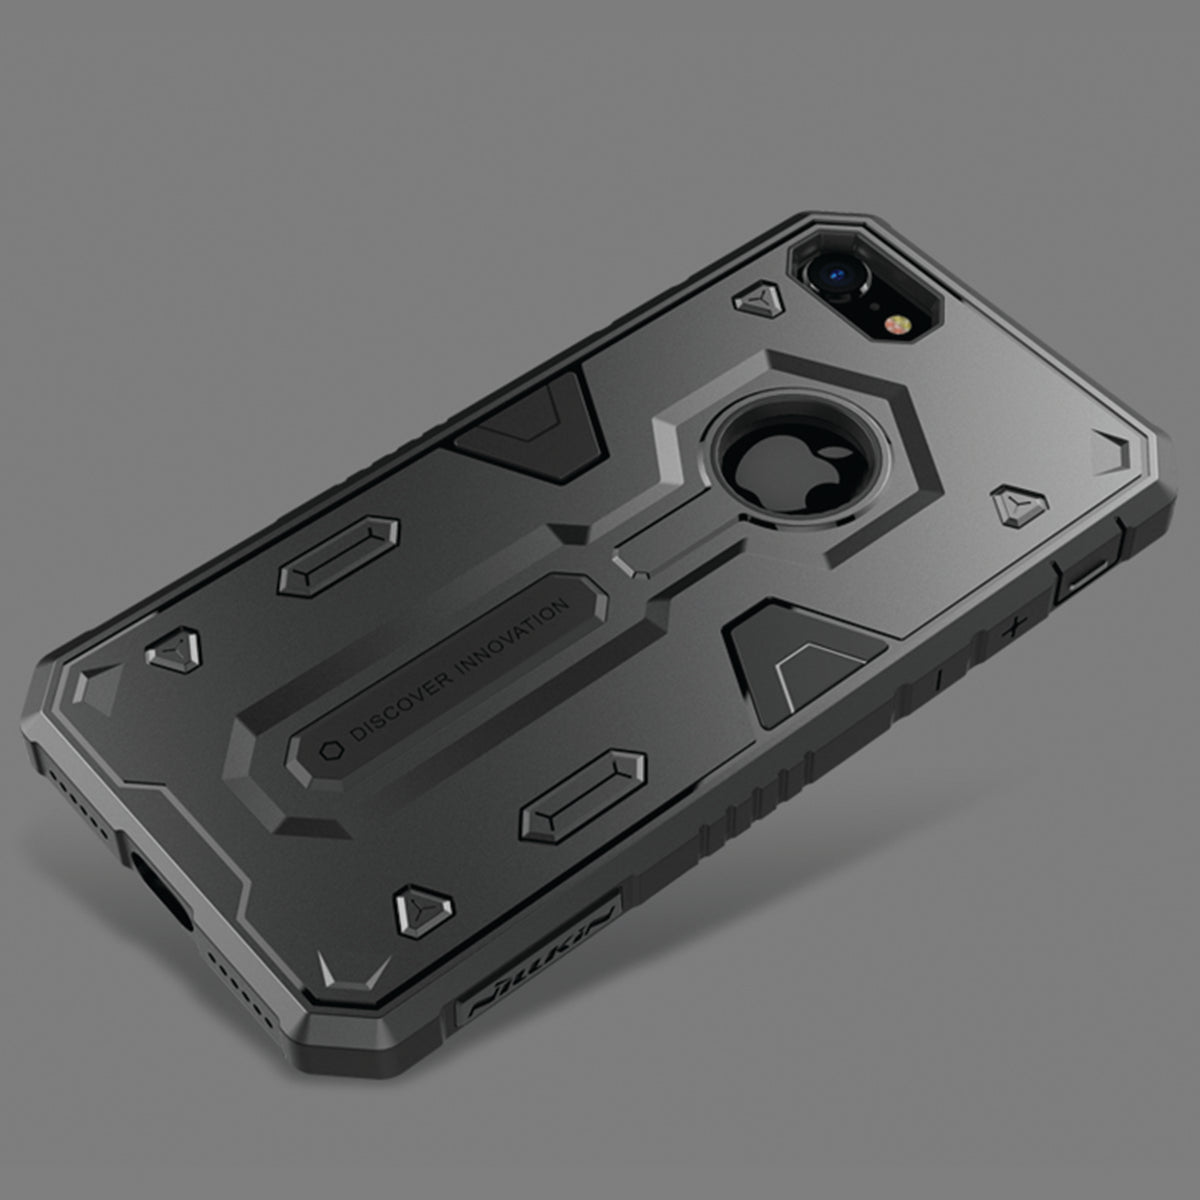 Indestructible Defender Luxury Case